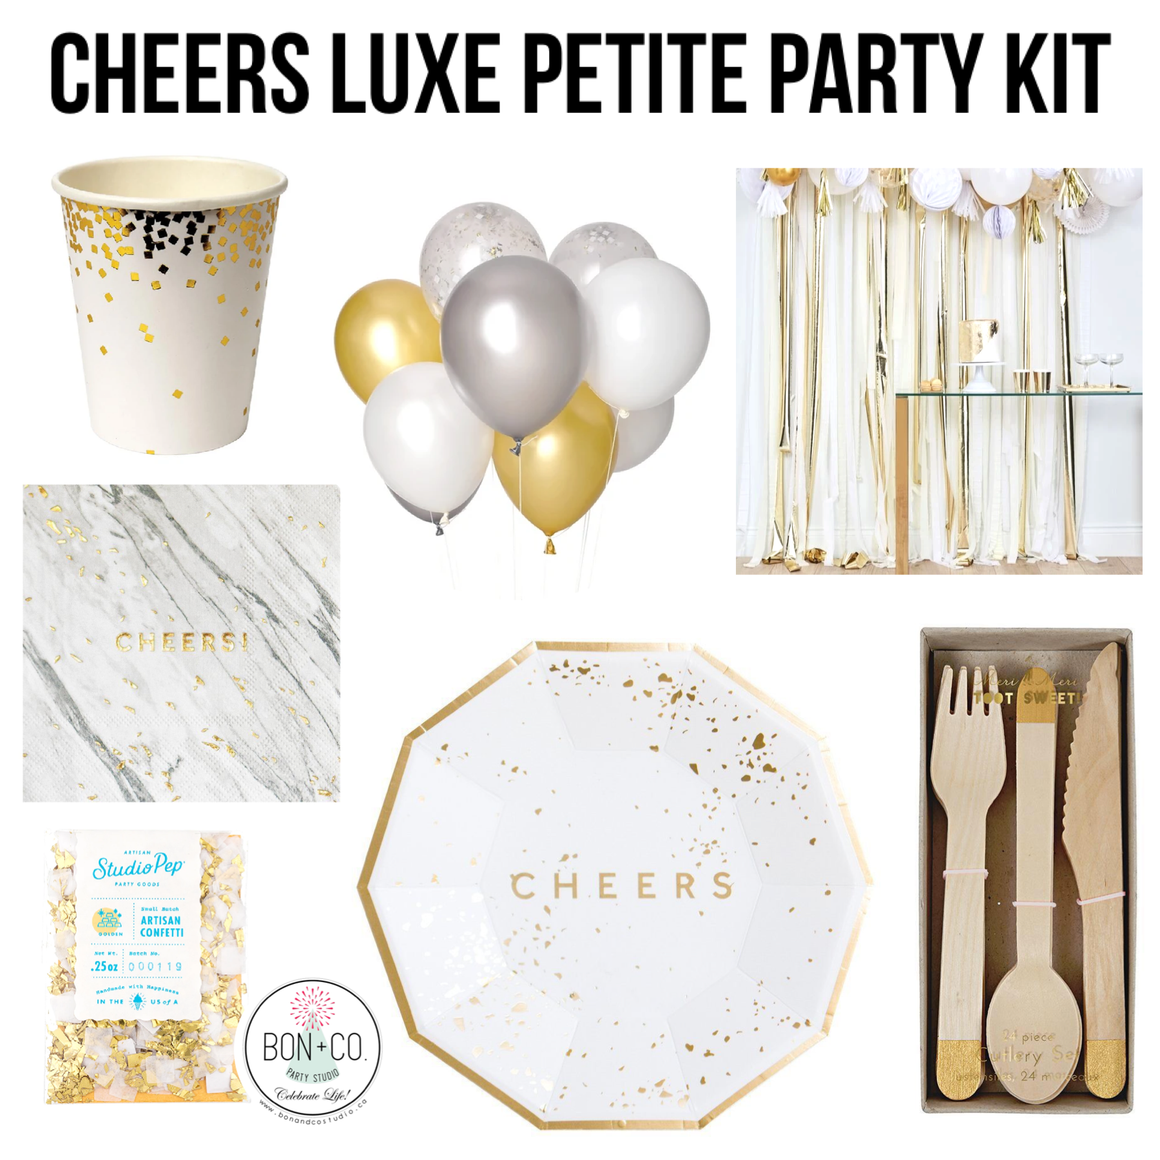 PETITE PARTY KIT LUXE - CHEERS!